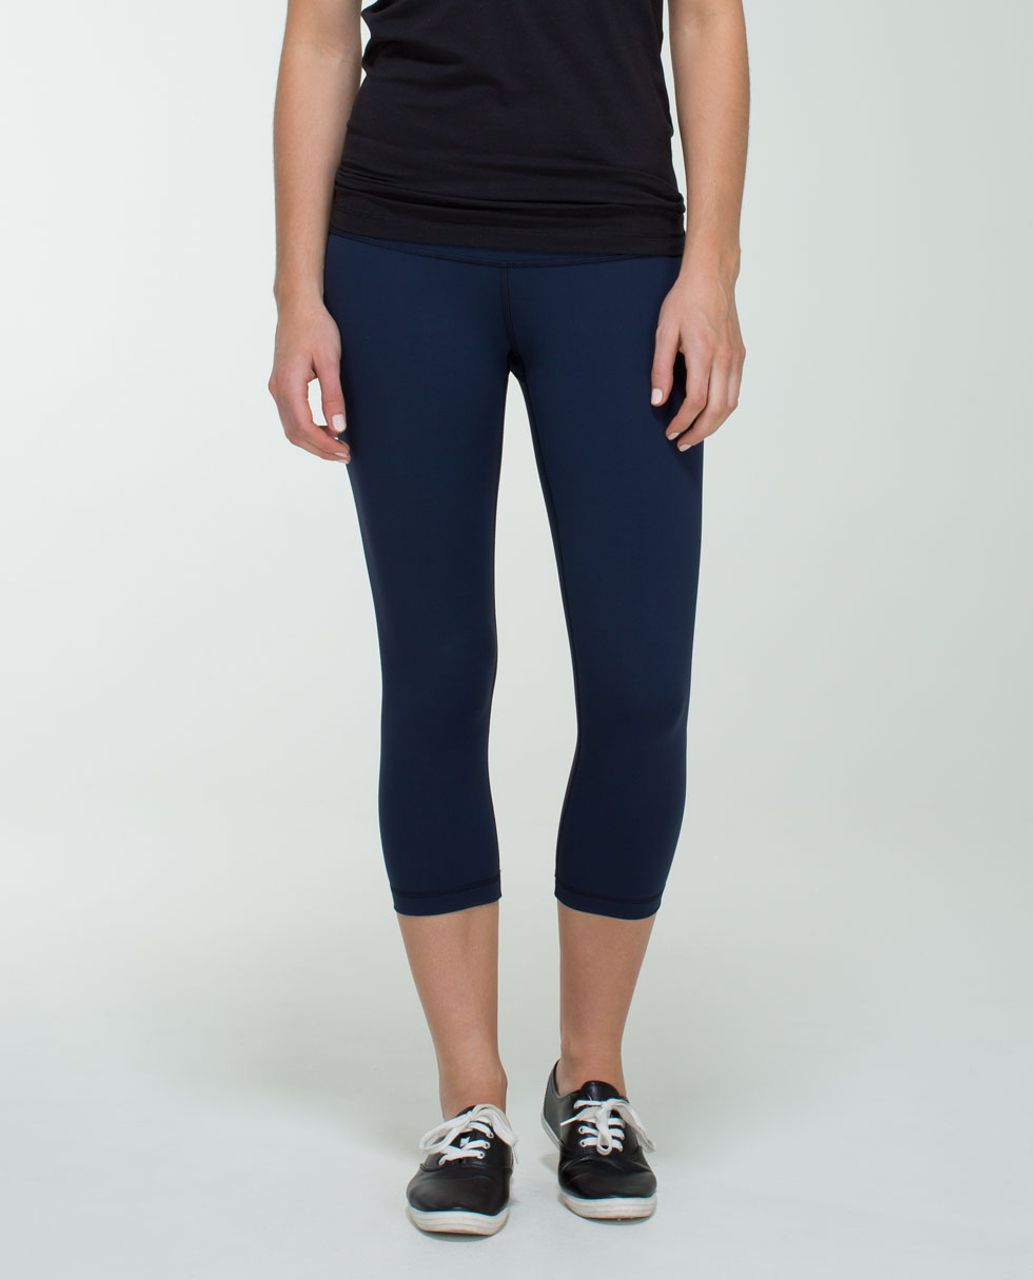 Lululemon Wunder Under Crop *Full-On Luxtreme - Inkwell